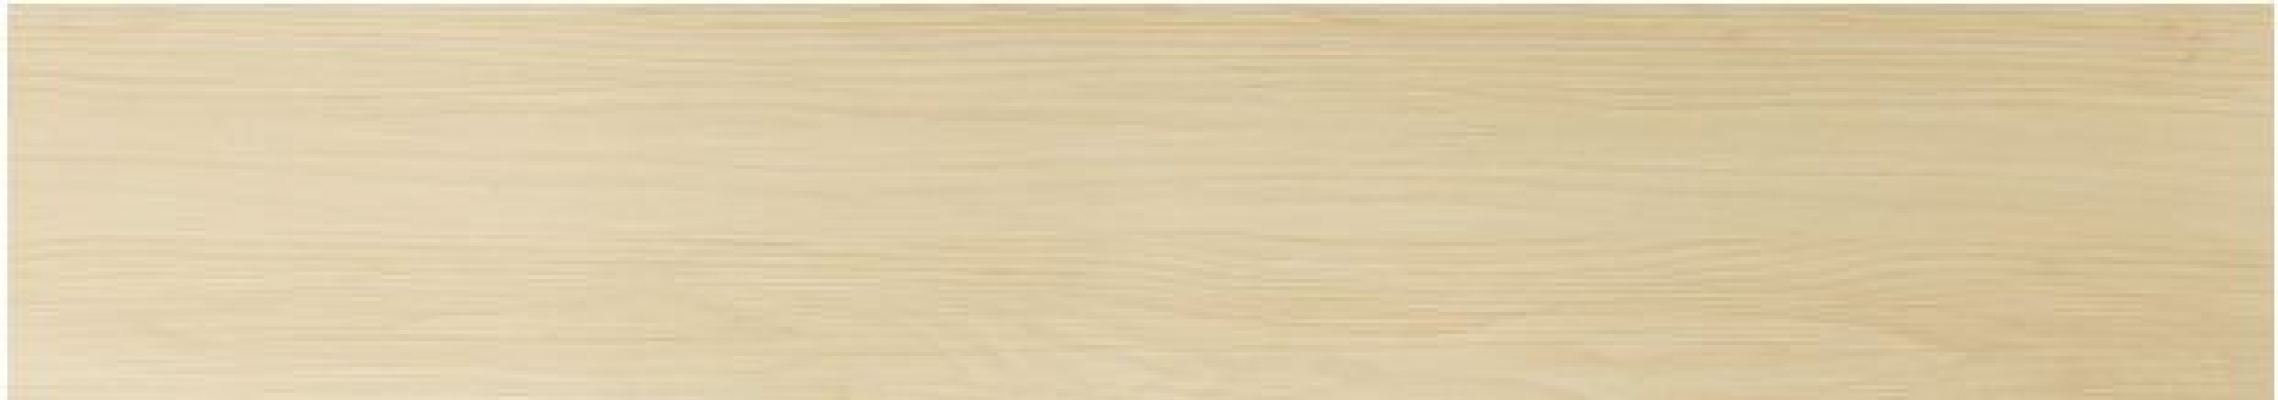 SIGNATURE 4MM DB4-2906C MAPLE GRAIN